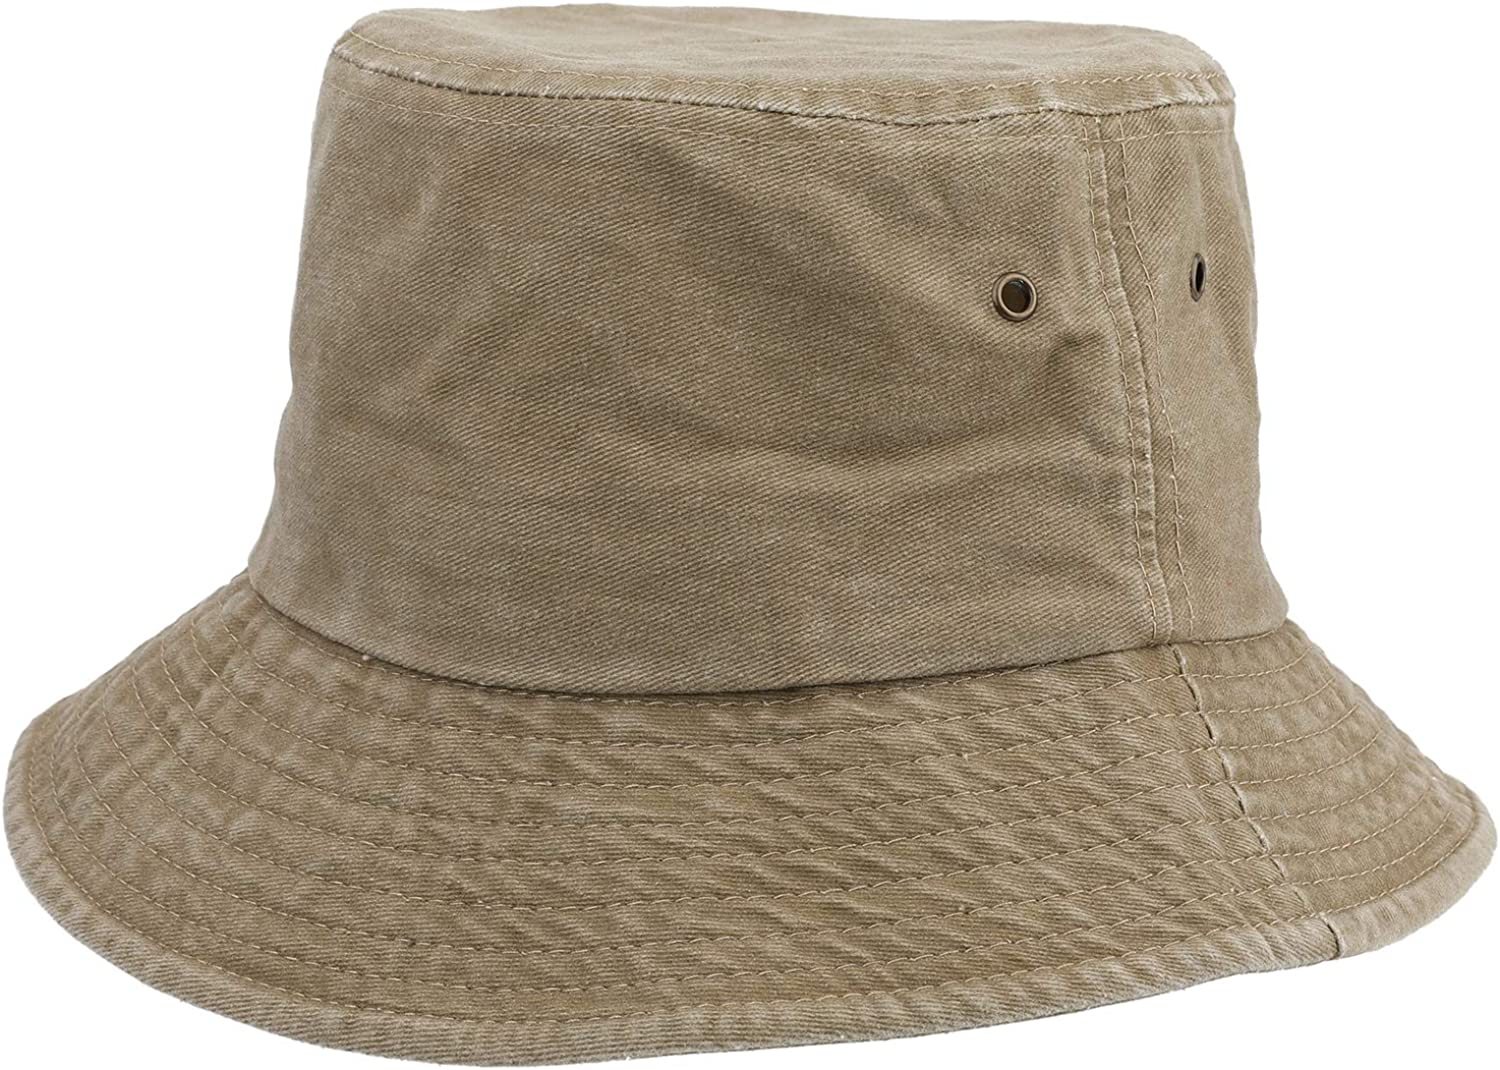 Besoogii Safety and trust Bucket Hat for Women Packable Outdoor Travel Men Beach Manufacturer OFFicial shop